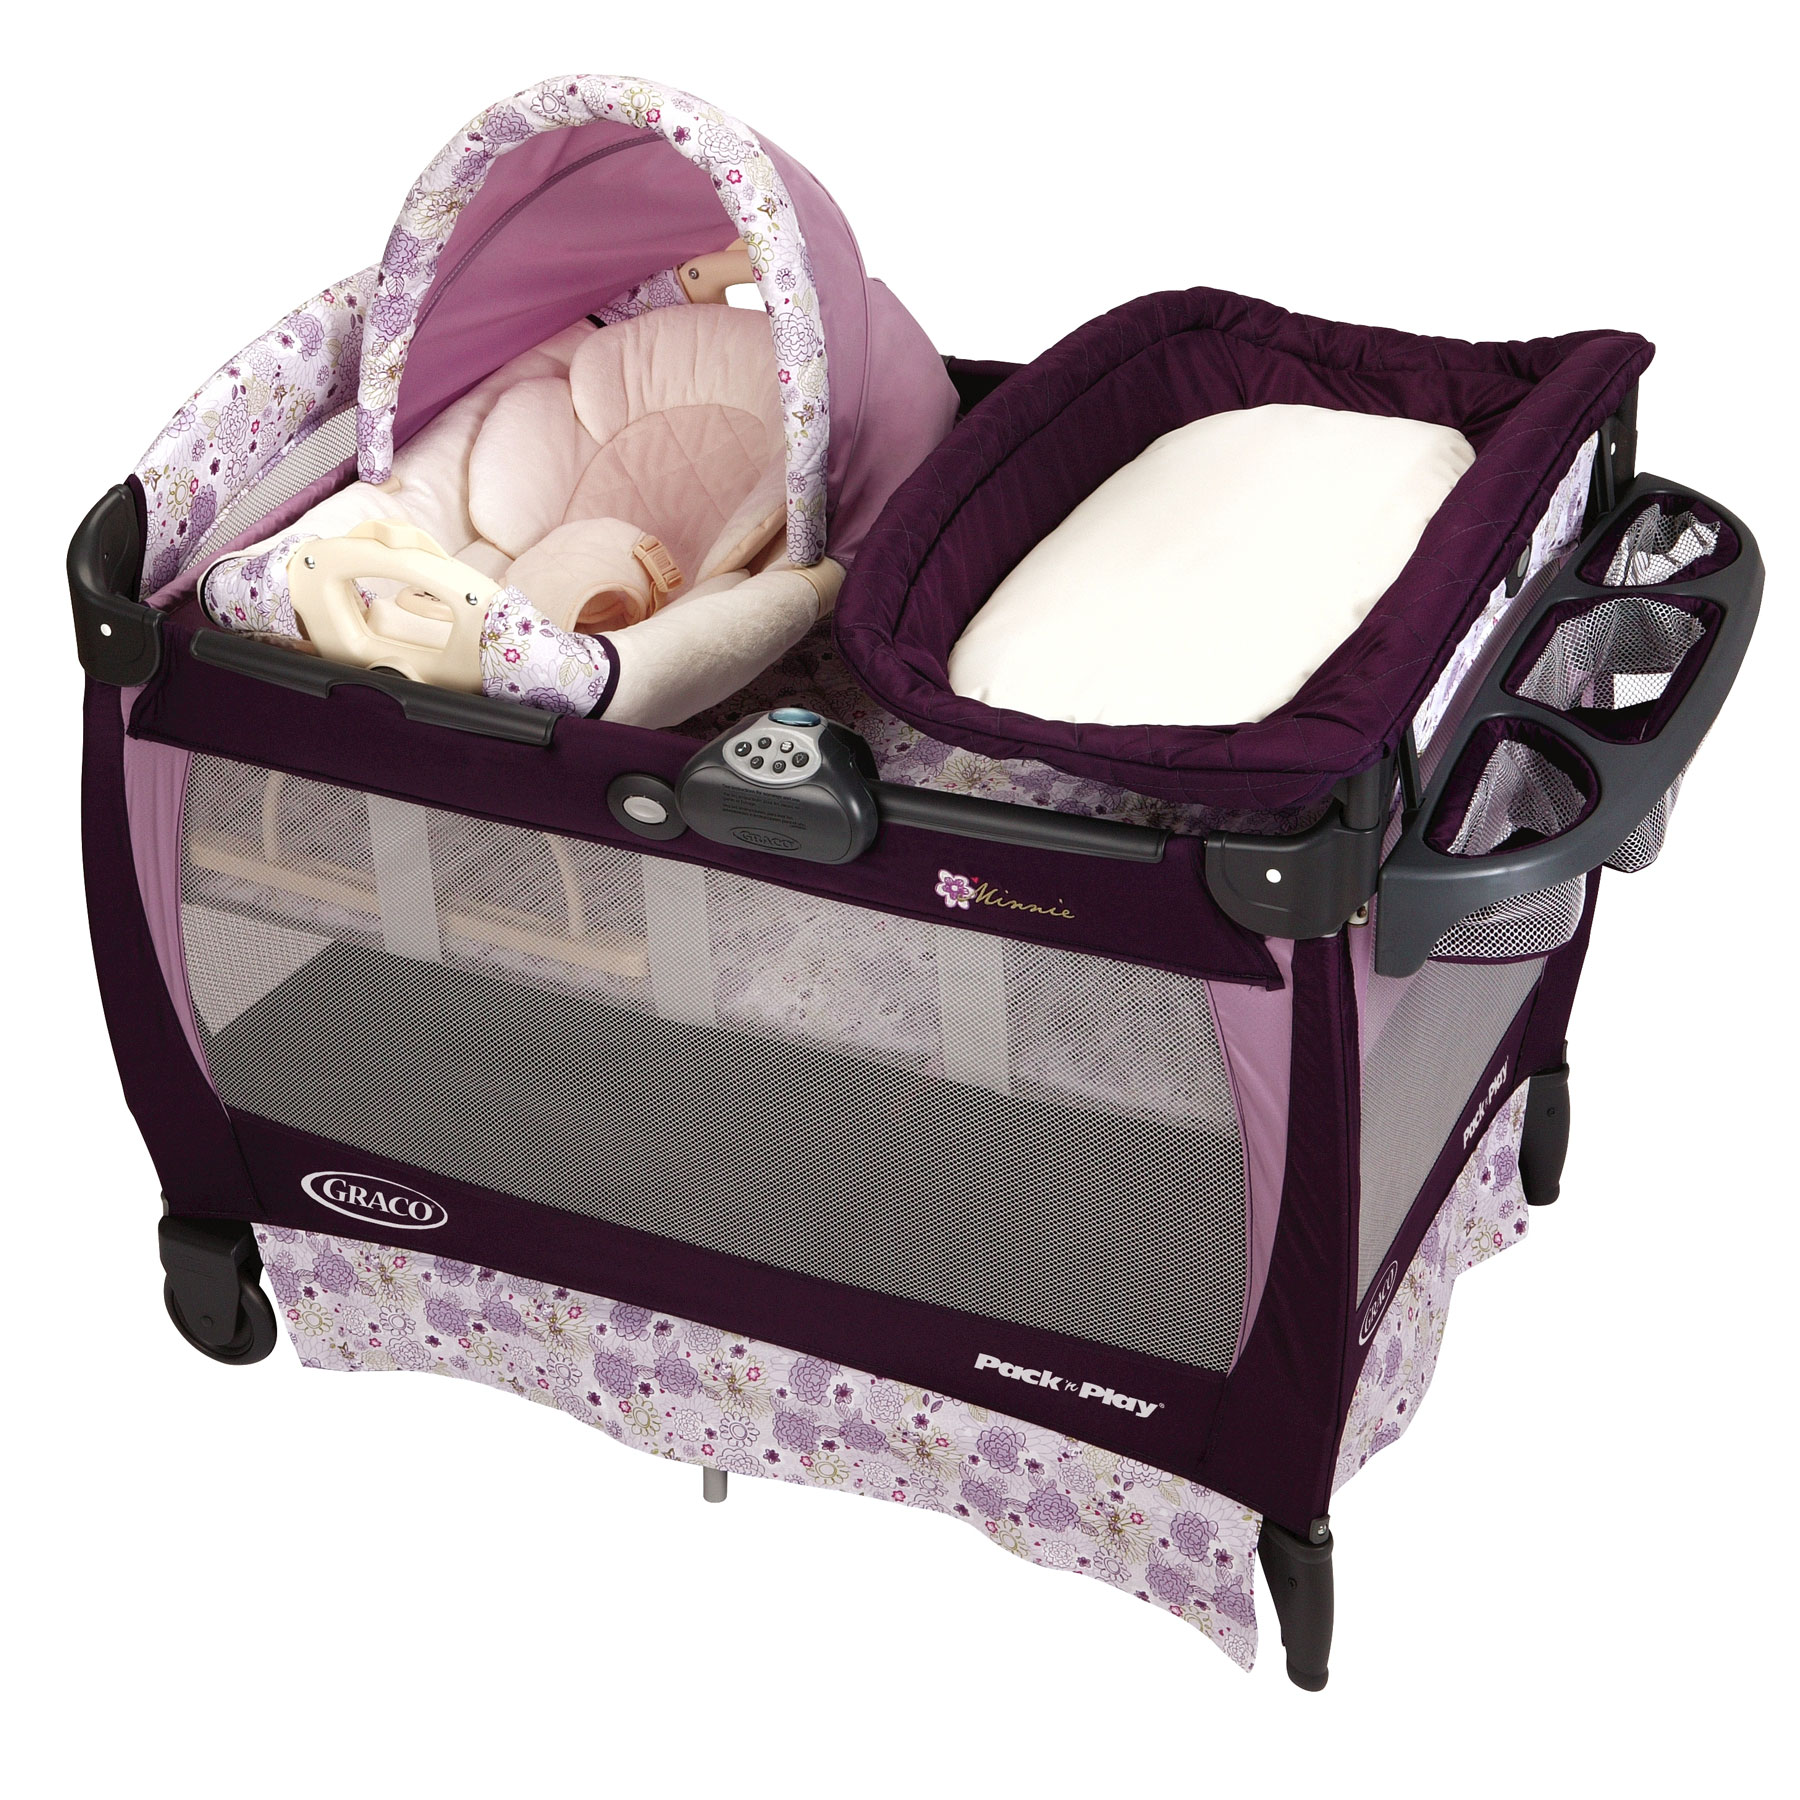 The Graco Pack N Play With Bassinet Baby Bassinets